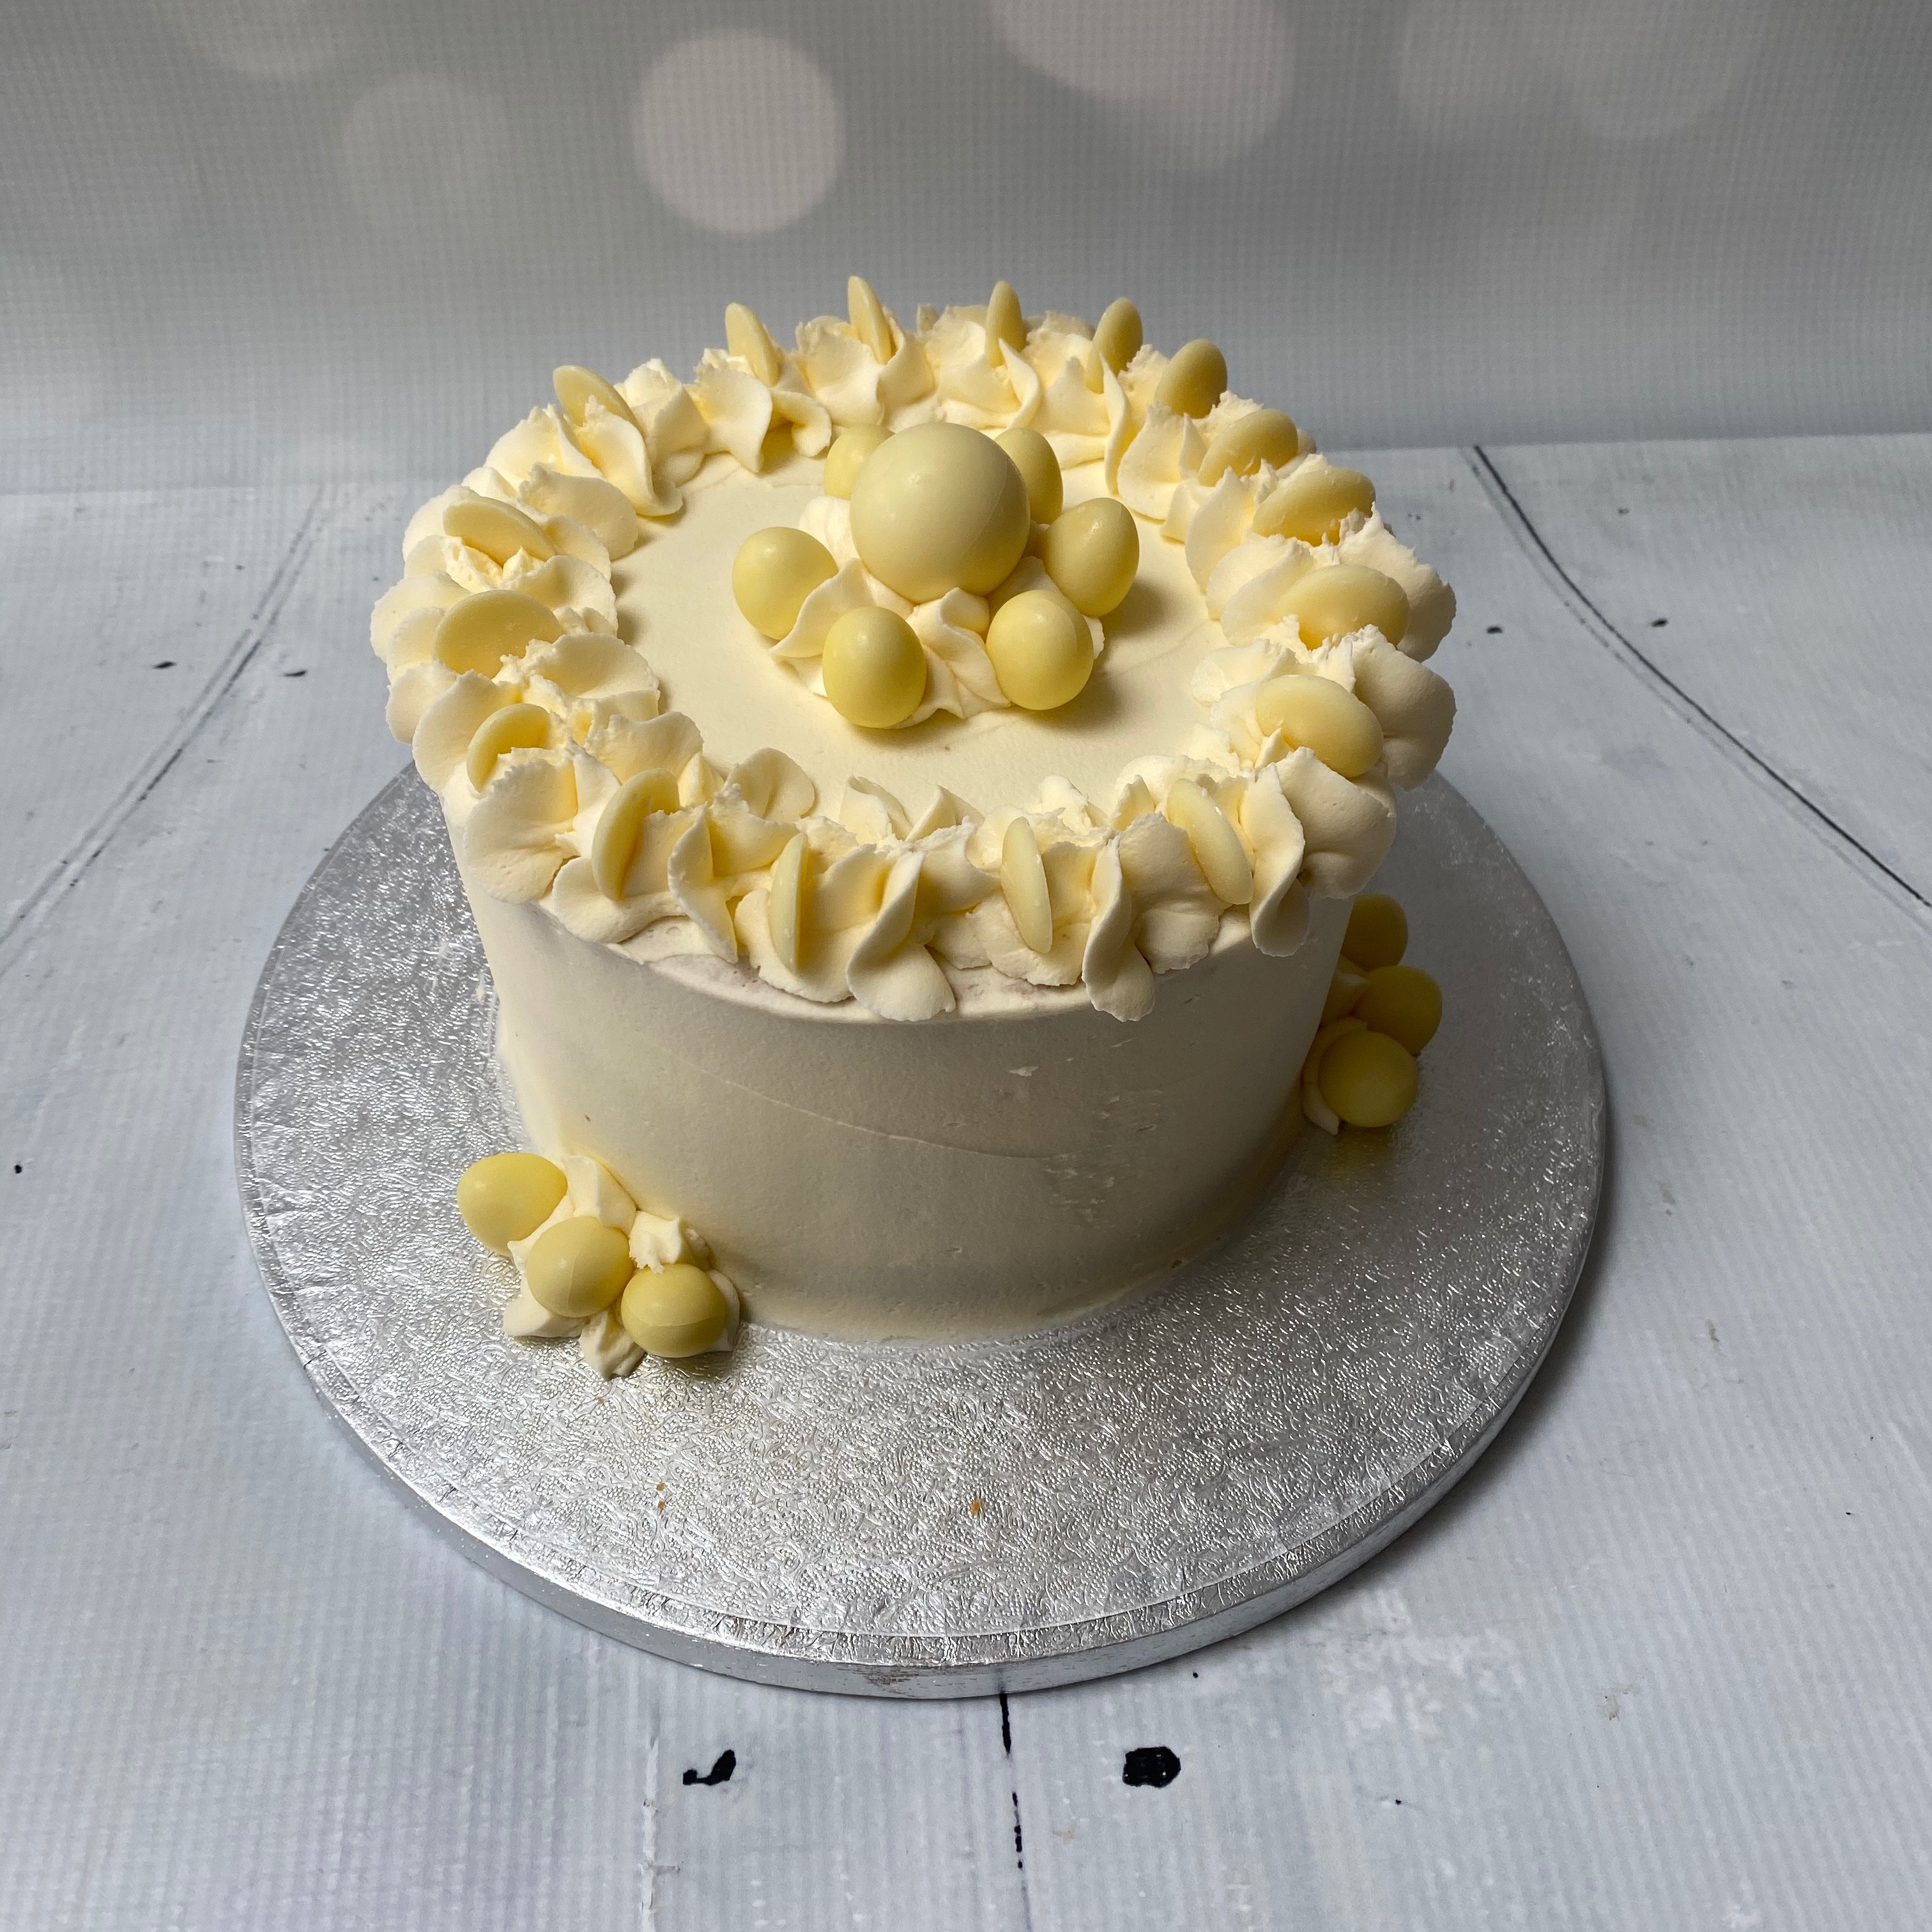 White chocolate buttercream cake